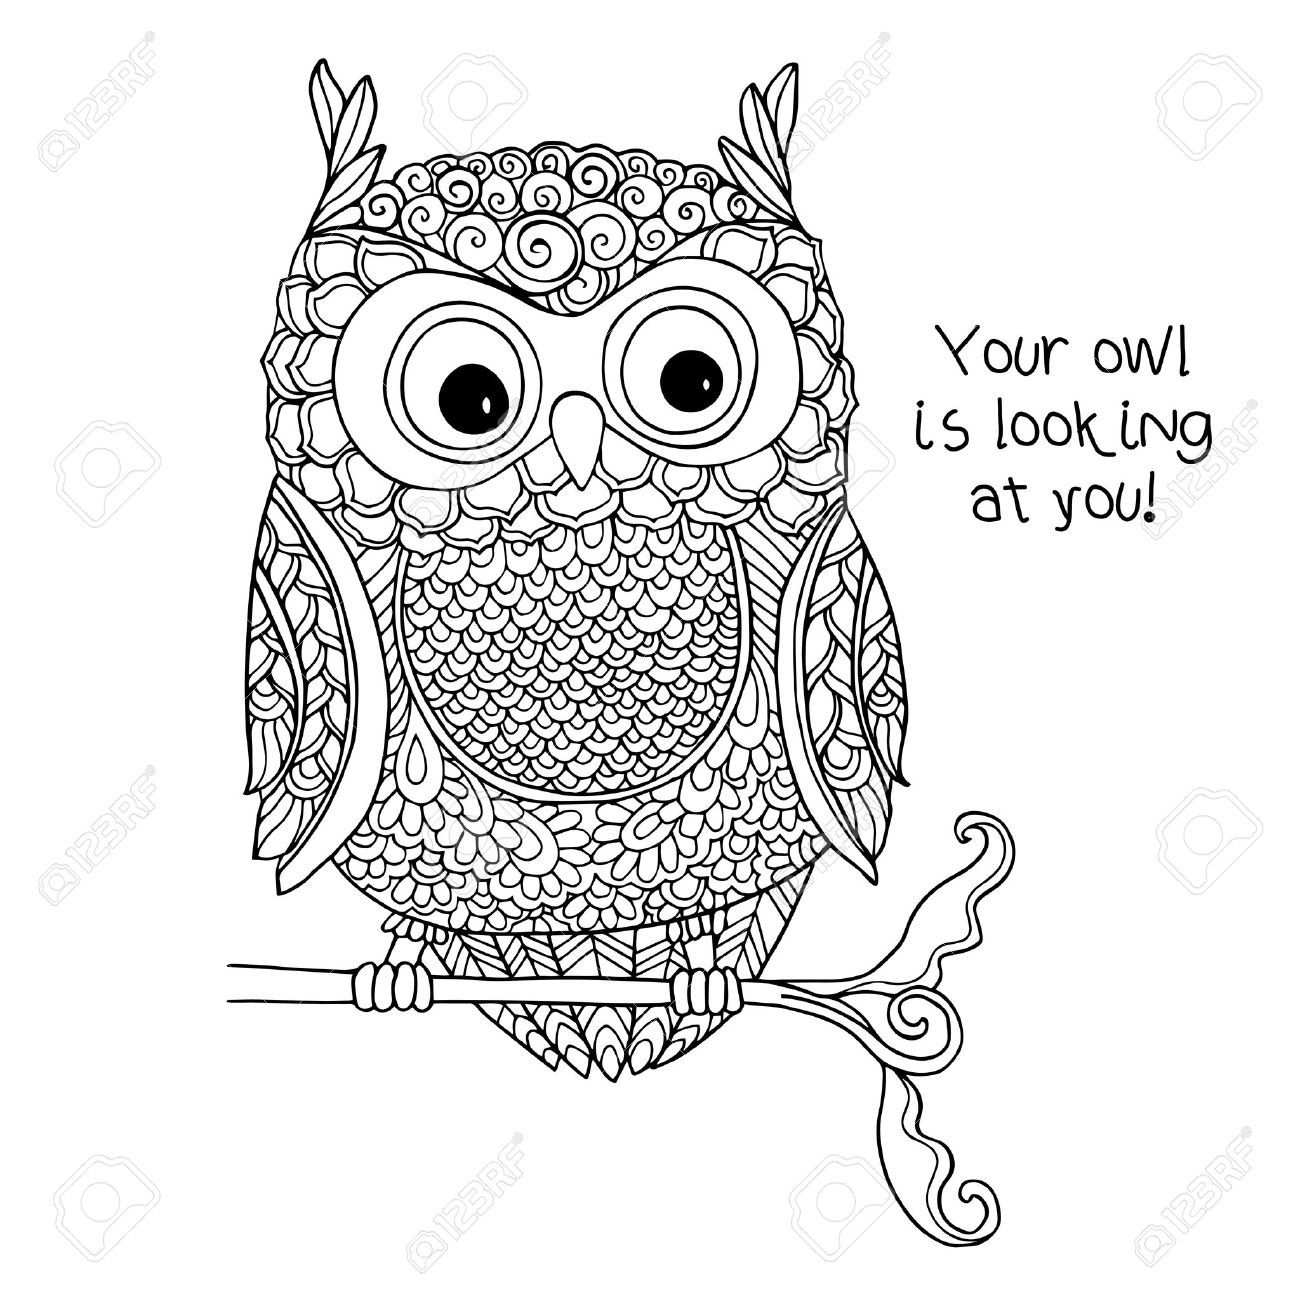 Pin Op Free Printable Coloring Pages For All